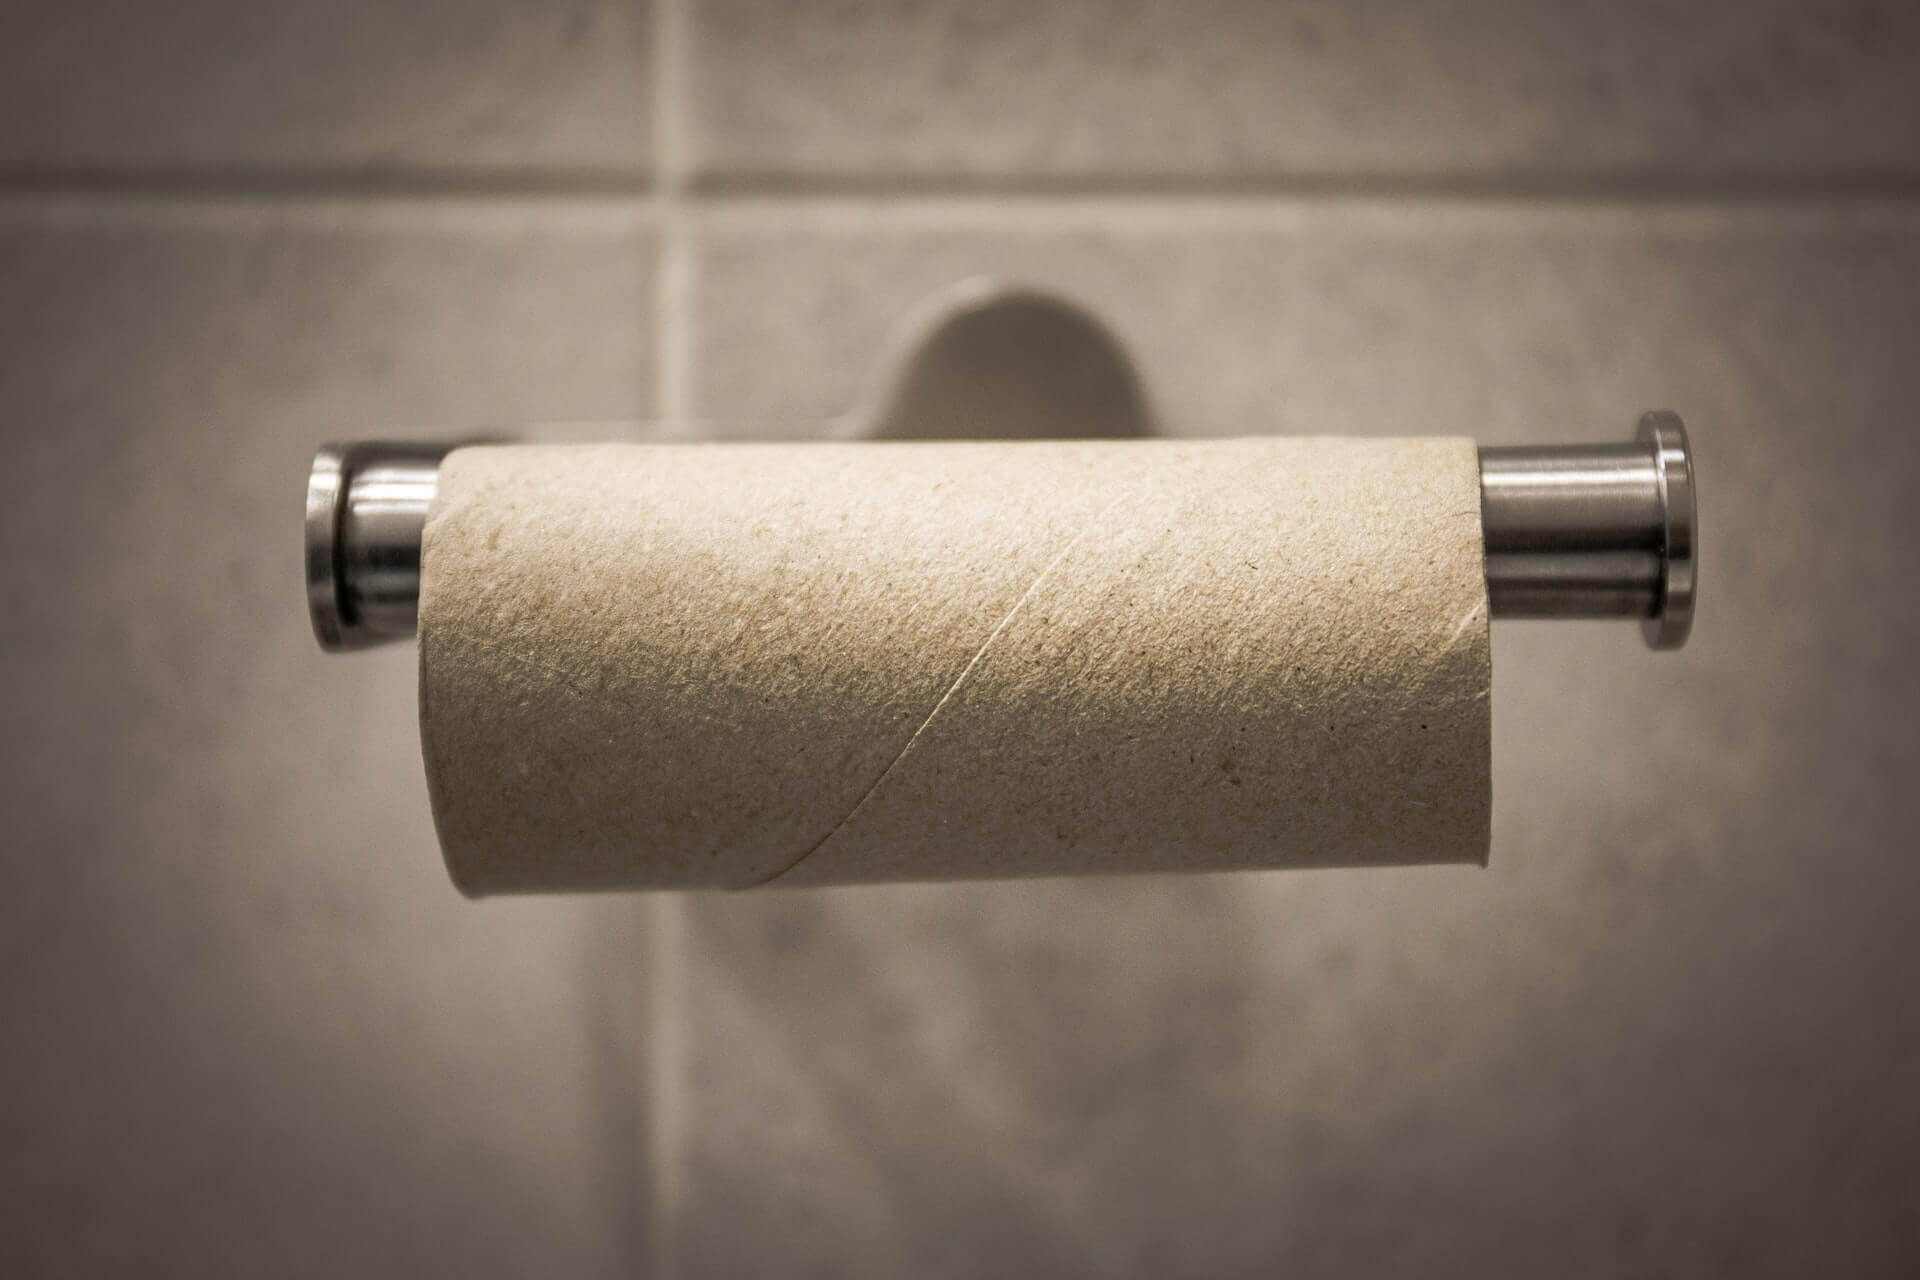 An empty tube of toilet paper.